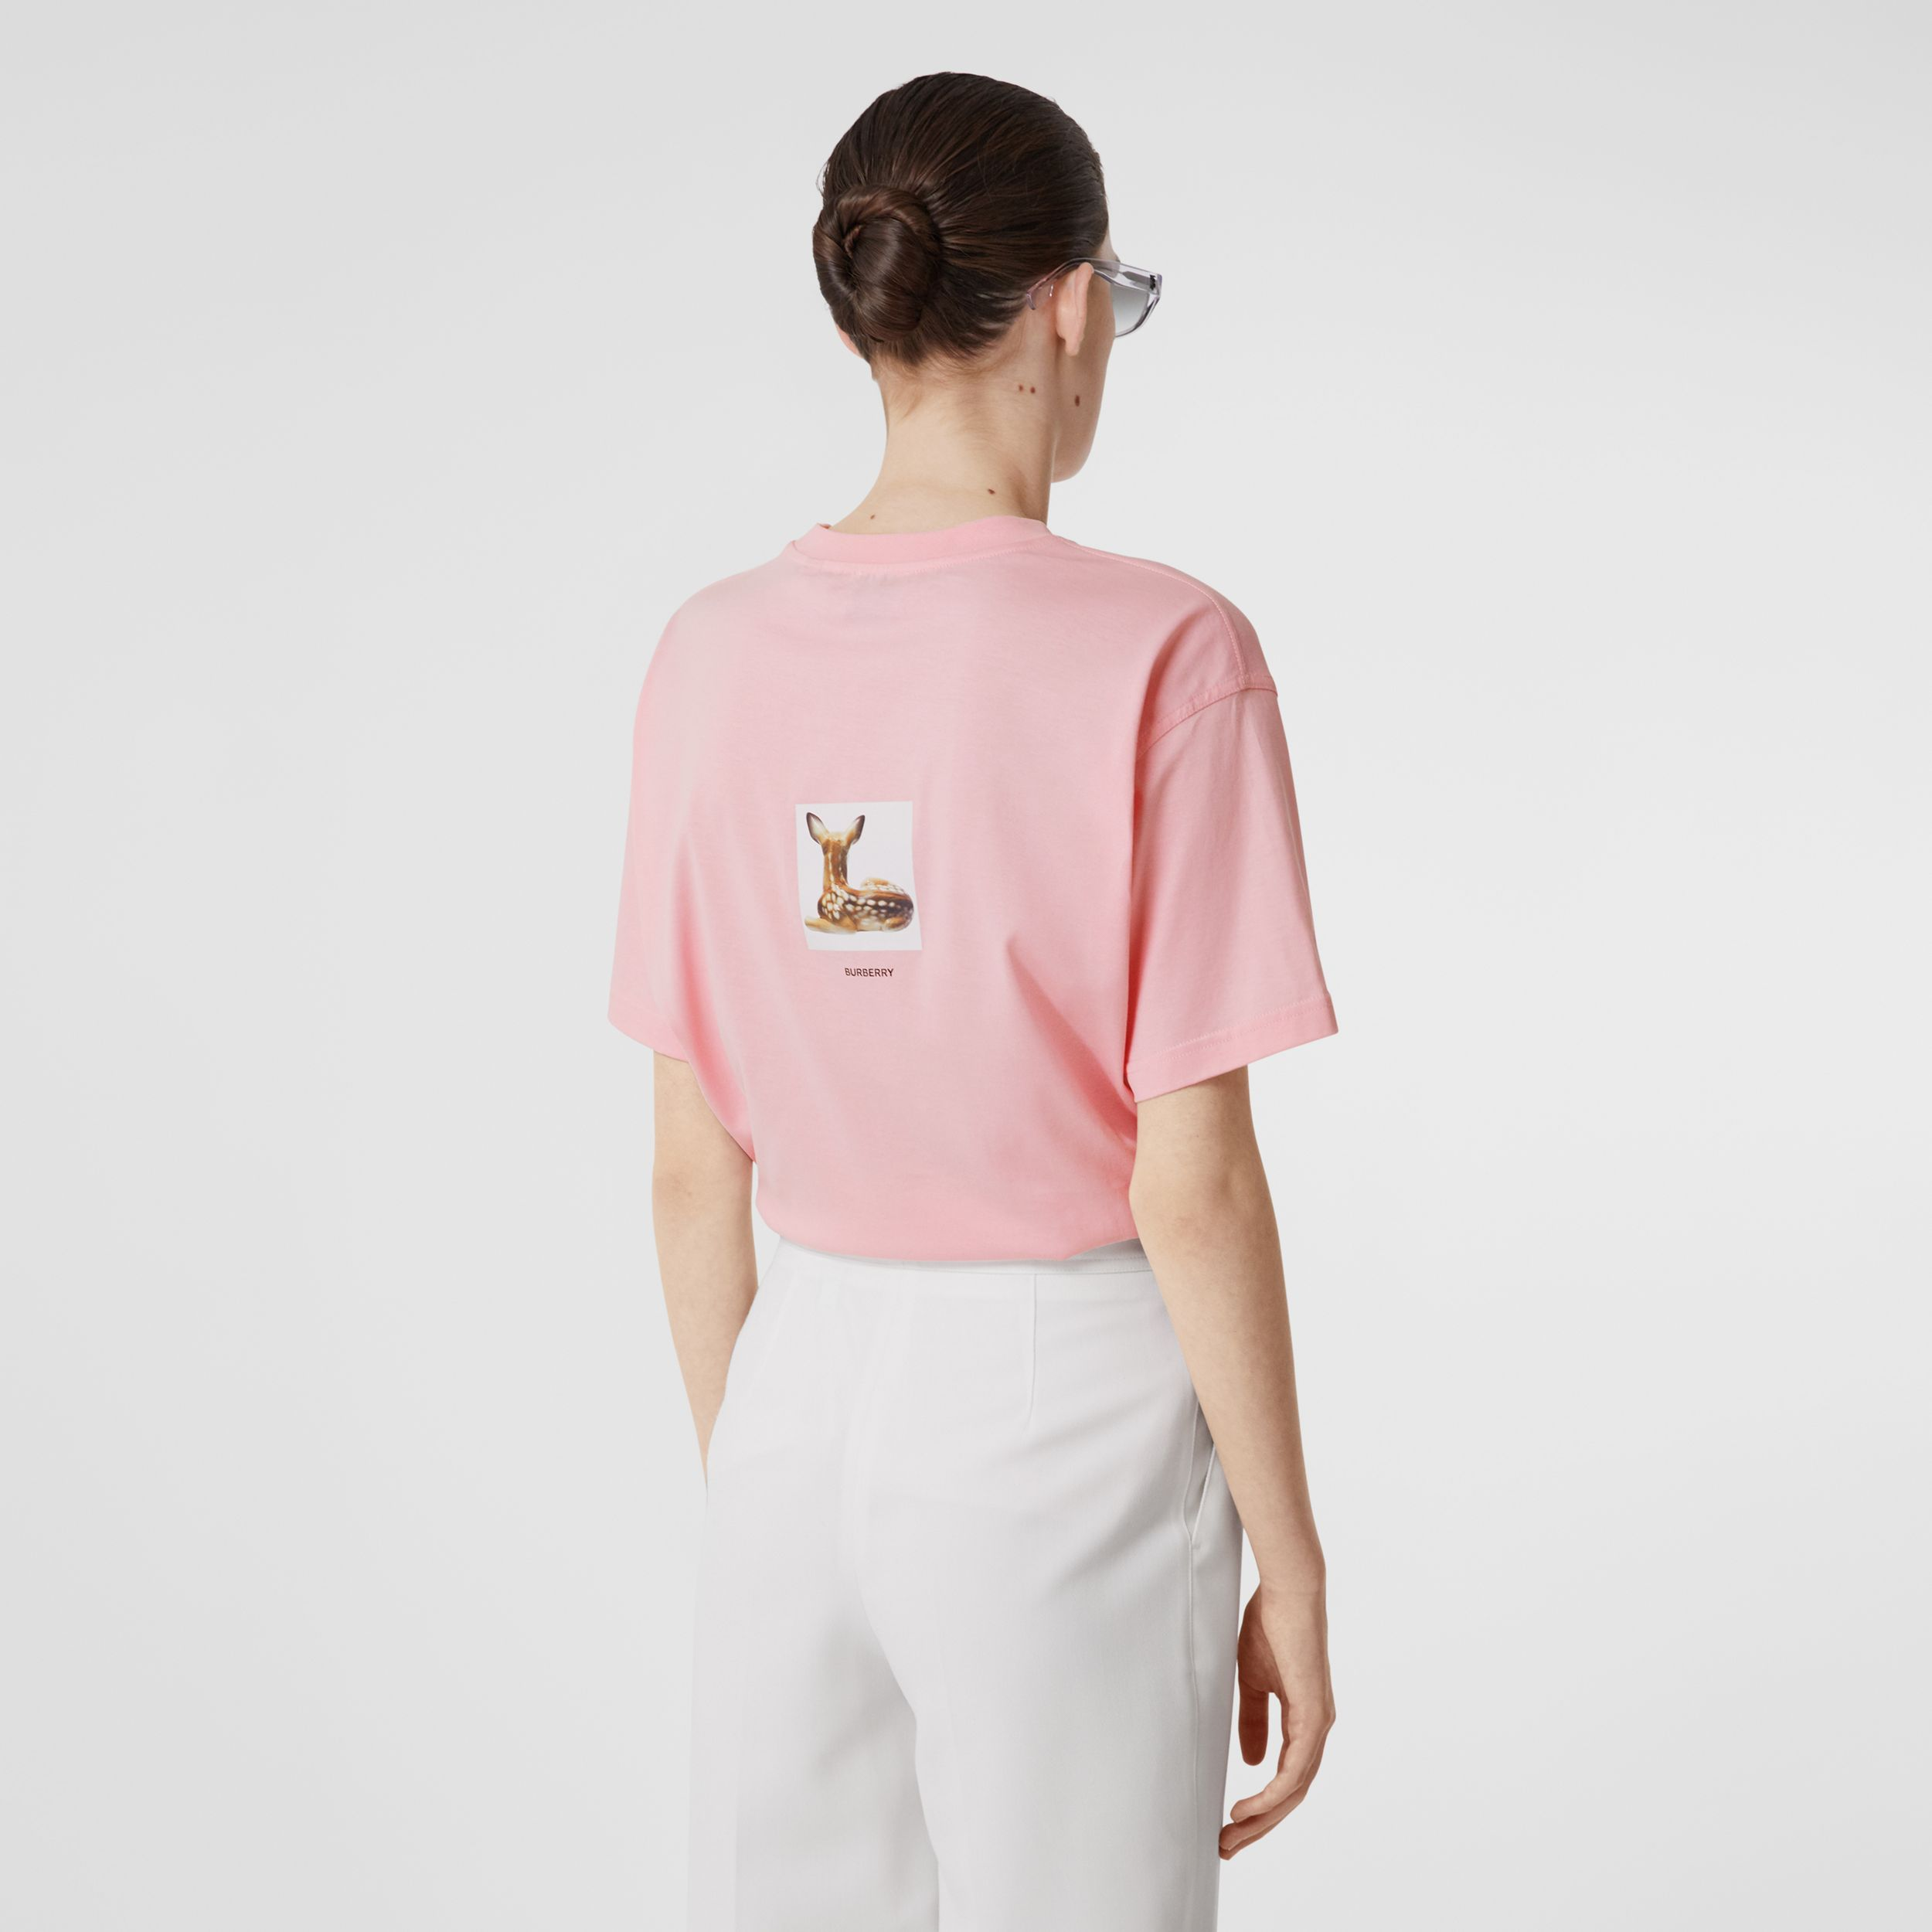 Deer Print Cotton T-shirt in Candy Pink - Women | Burberry - 3